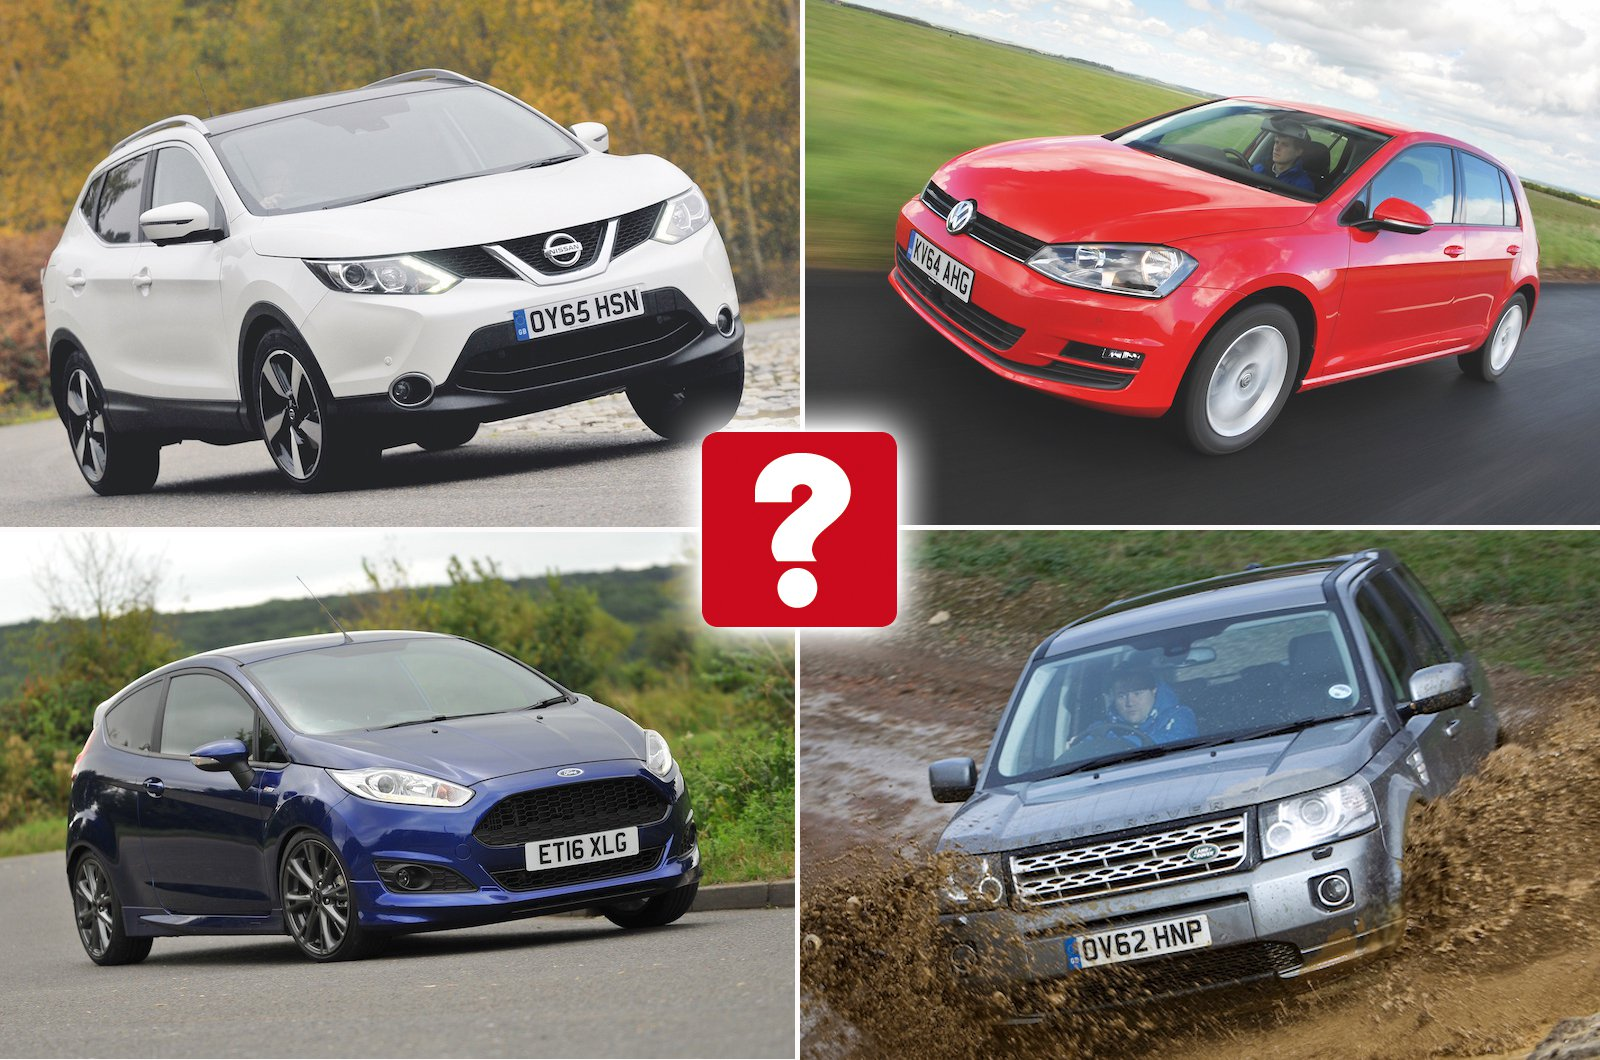 Most popular used car reviews of 2018